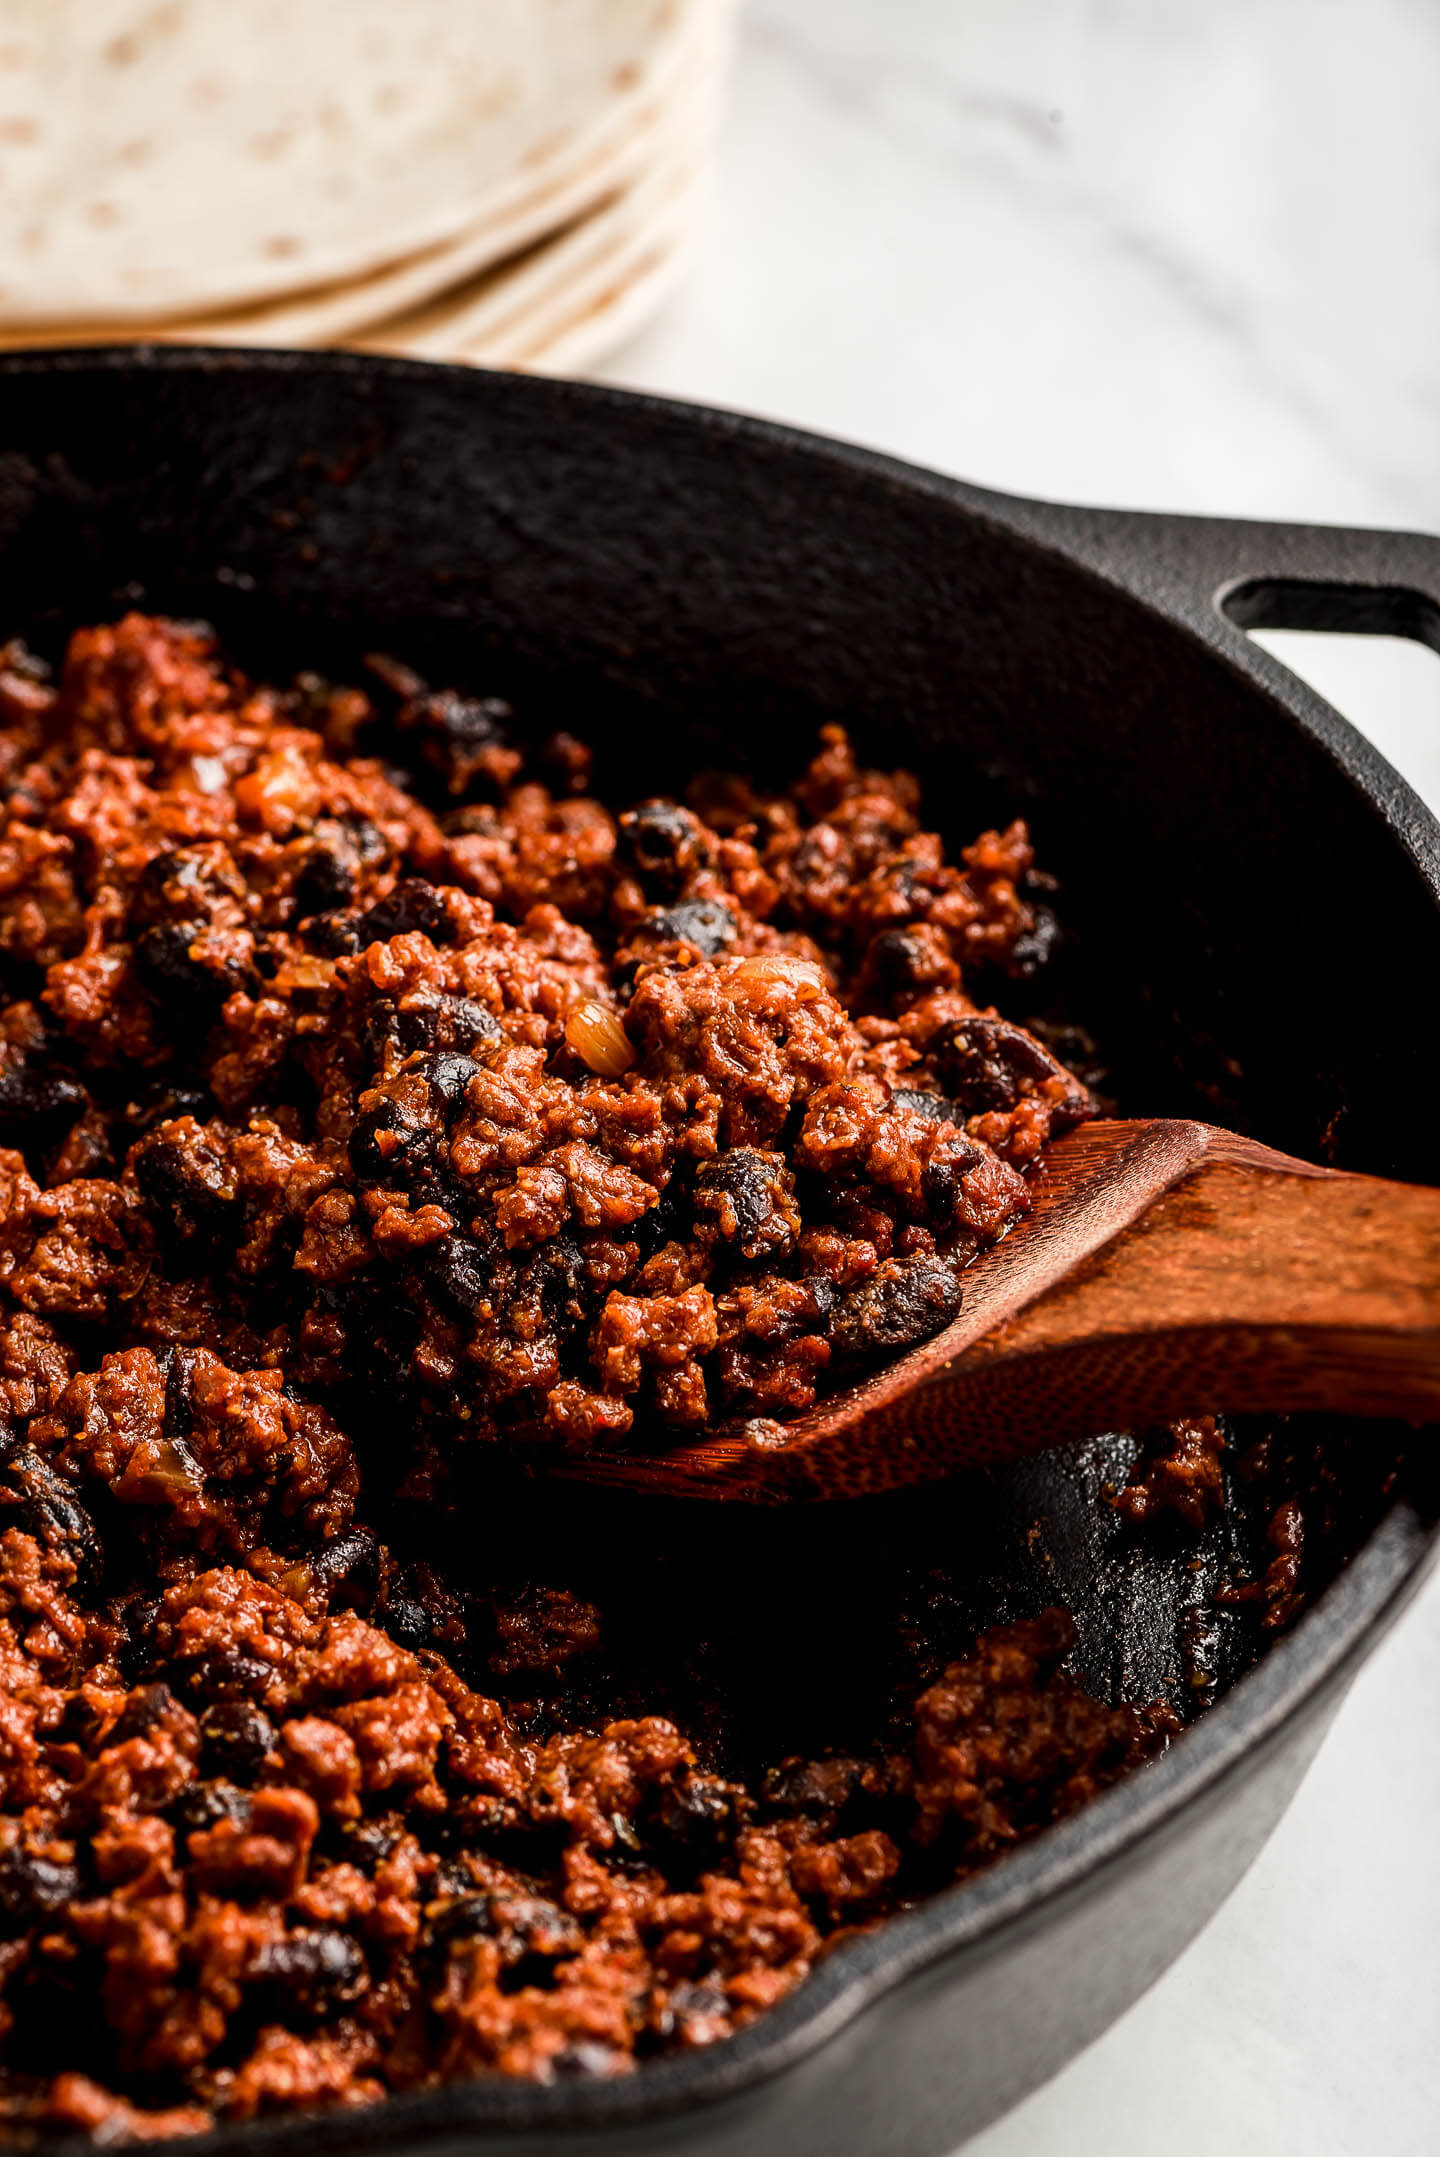 Close up shot of Ground Beef Taco Meat in a cast iron skillet.